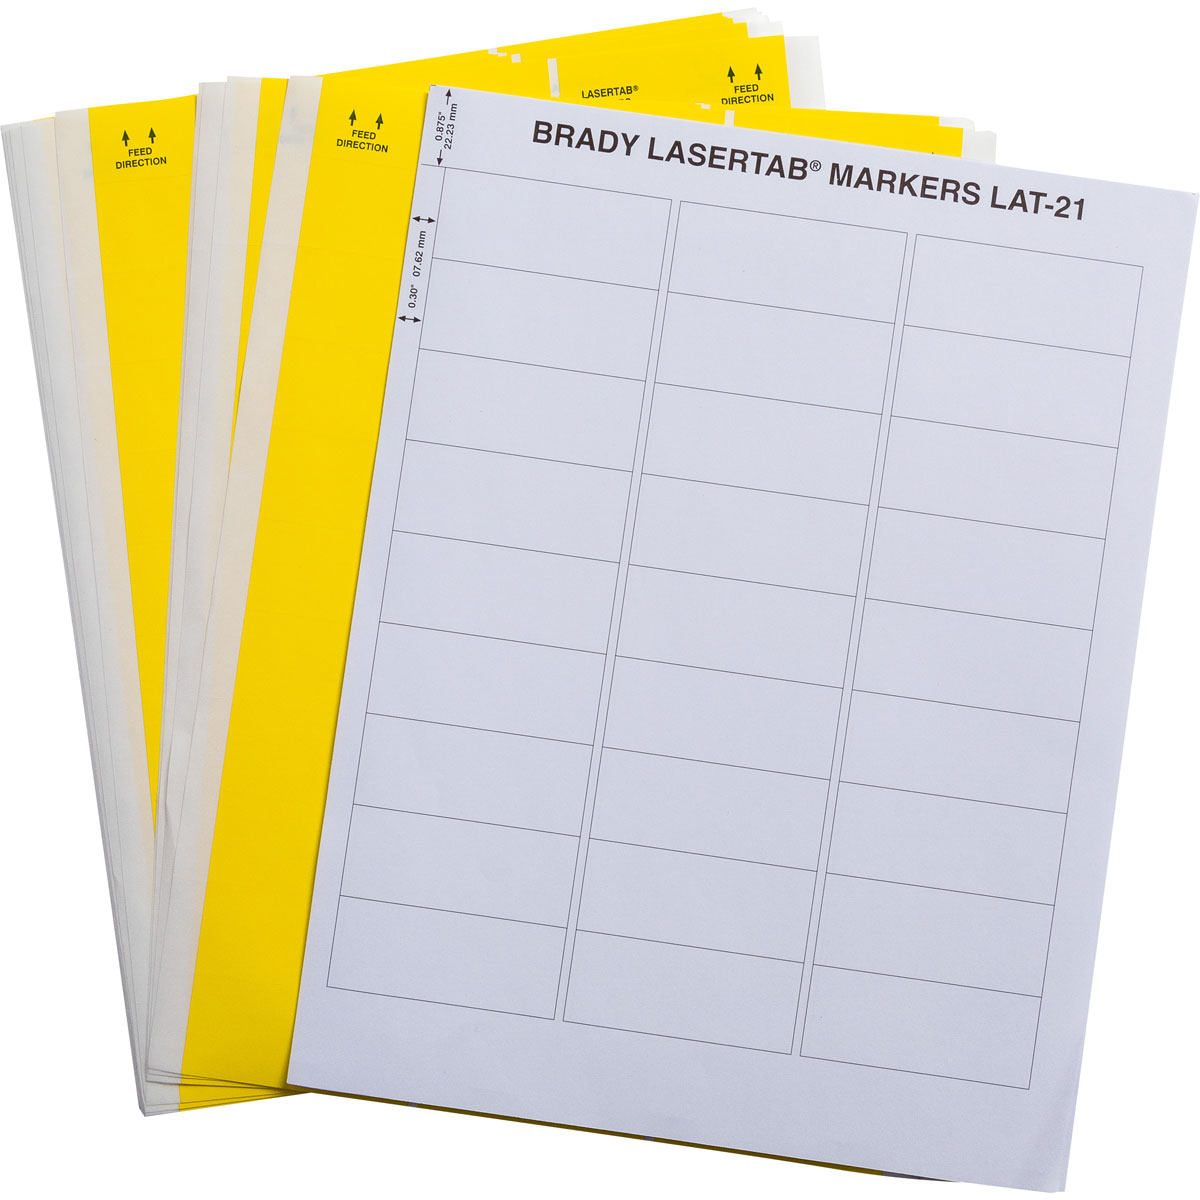 Brady part lat 21 747 1 yl lasertab laser printable labels for Brady label templates